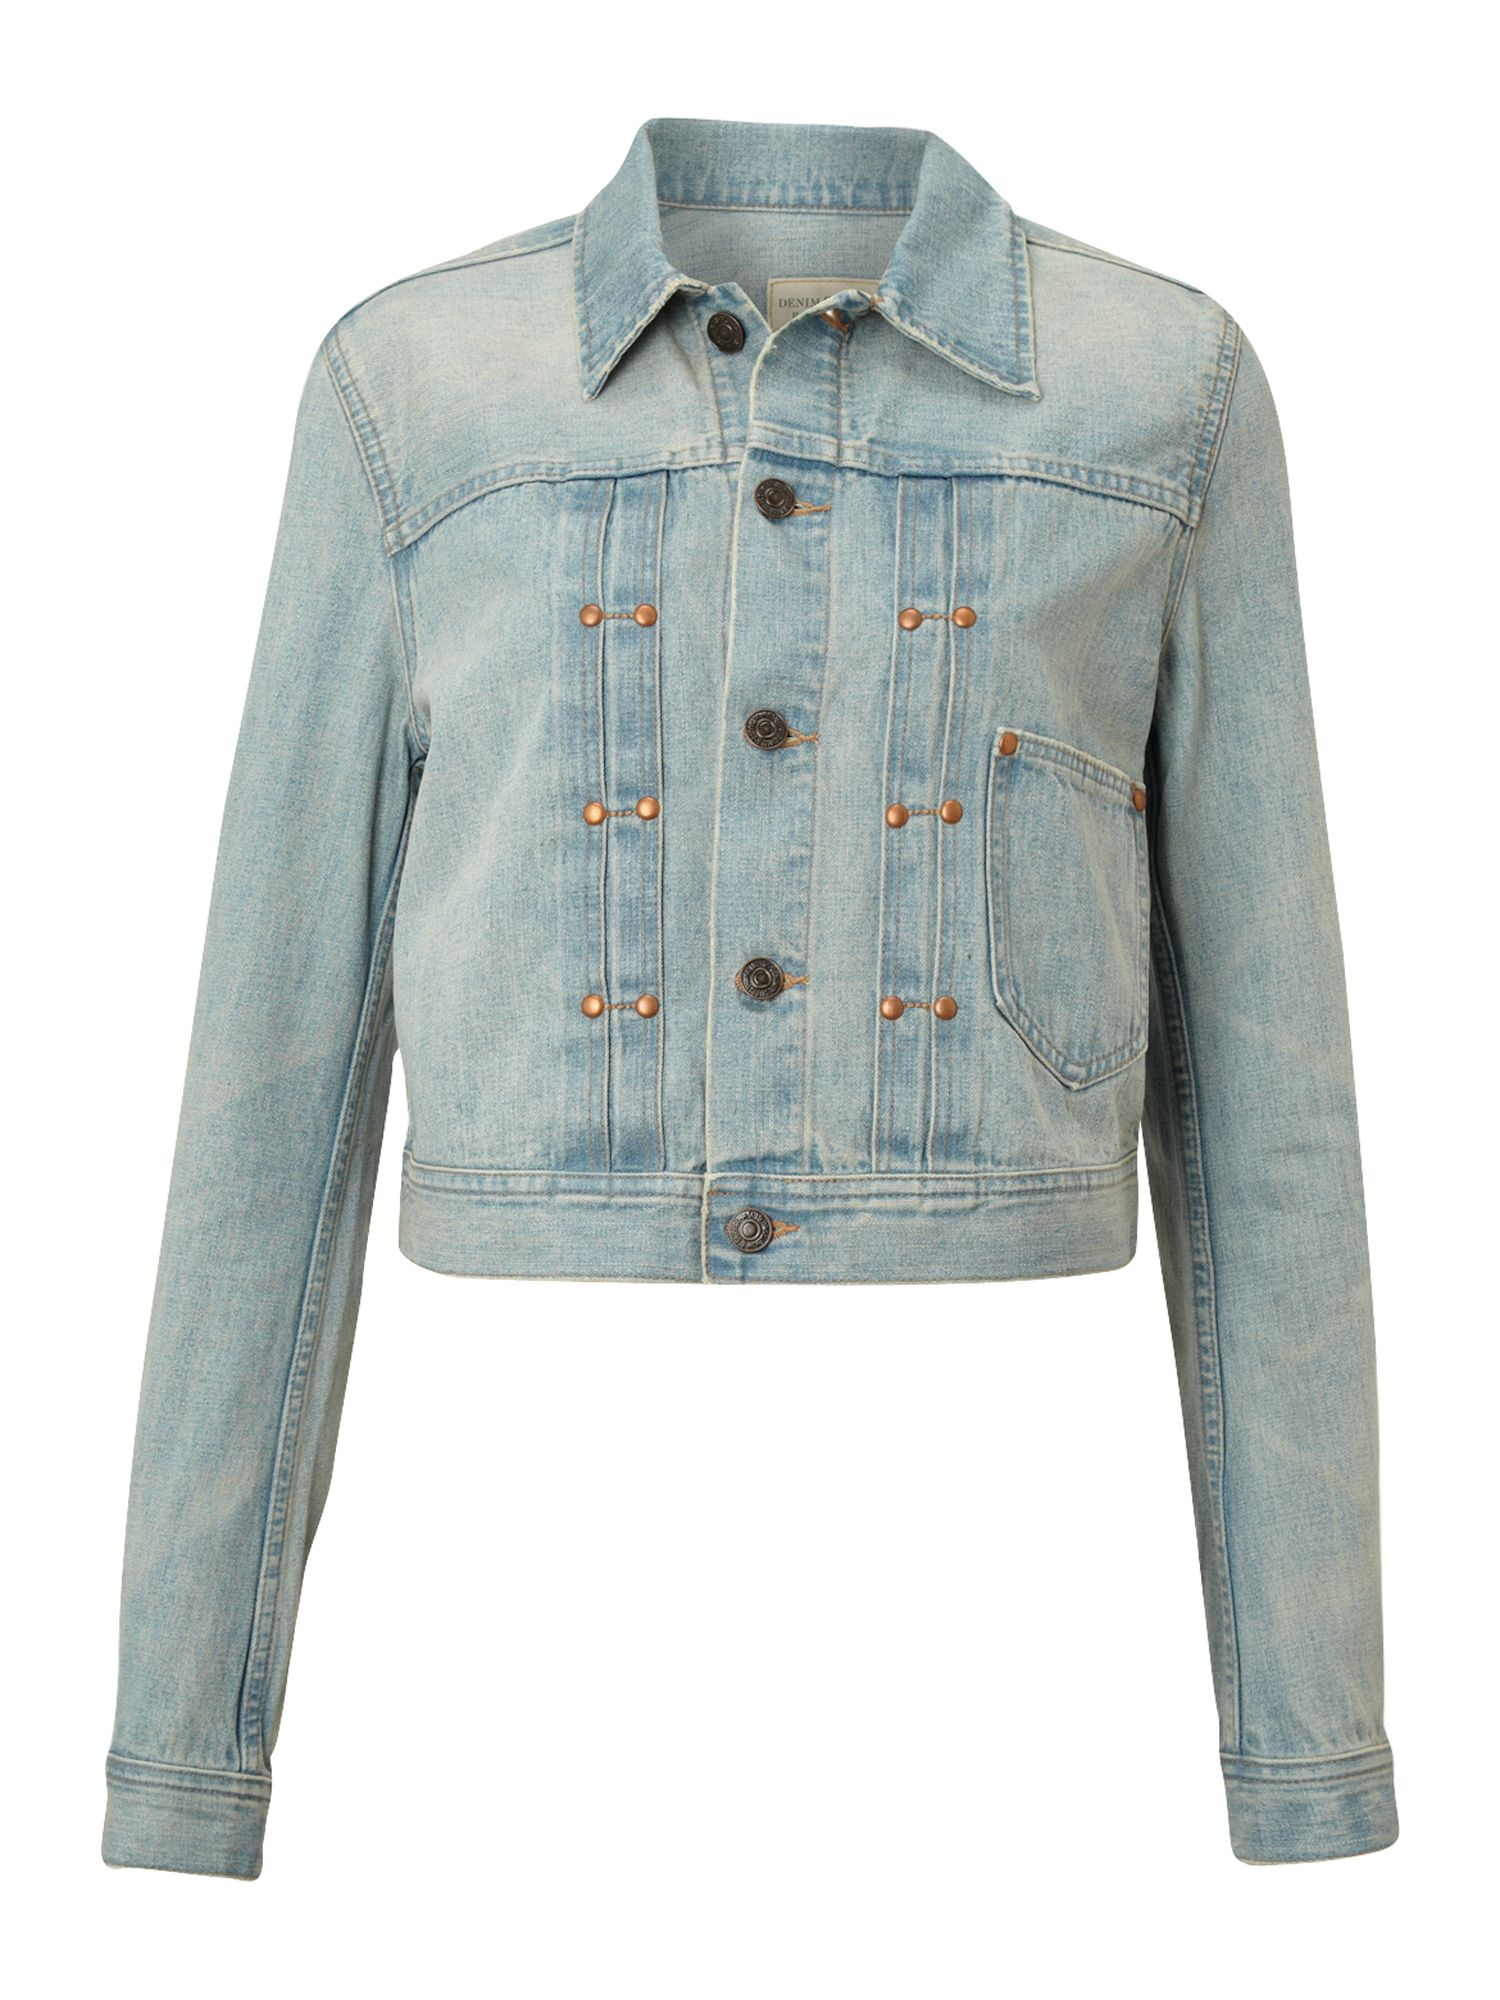 Retro trucker denim jacket